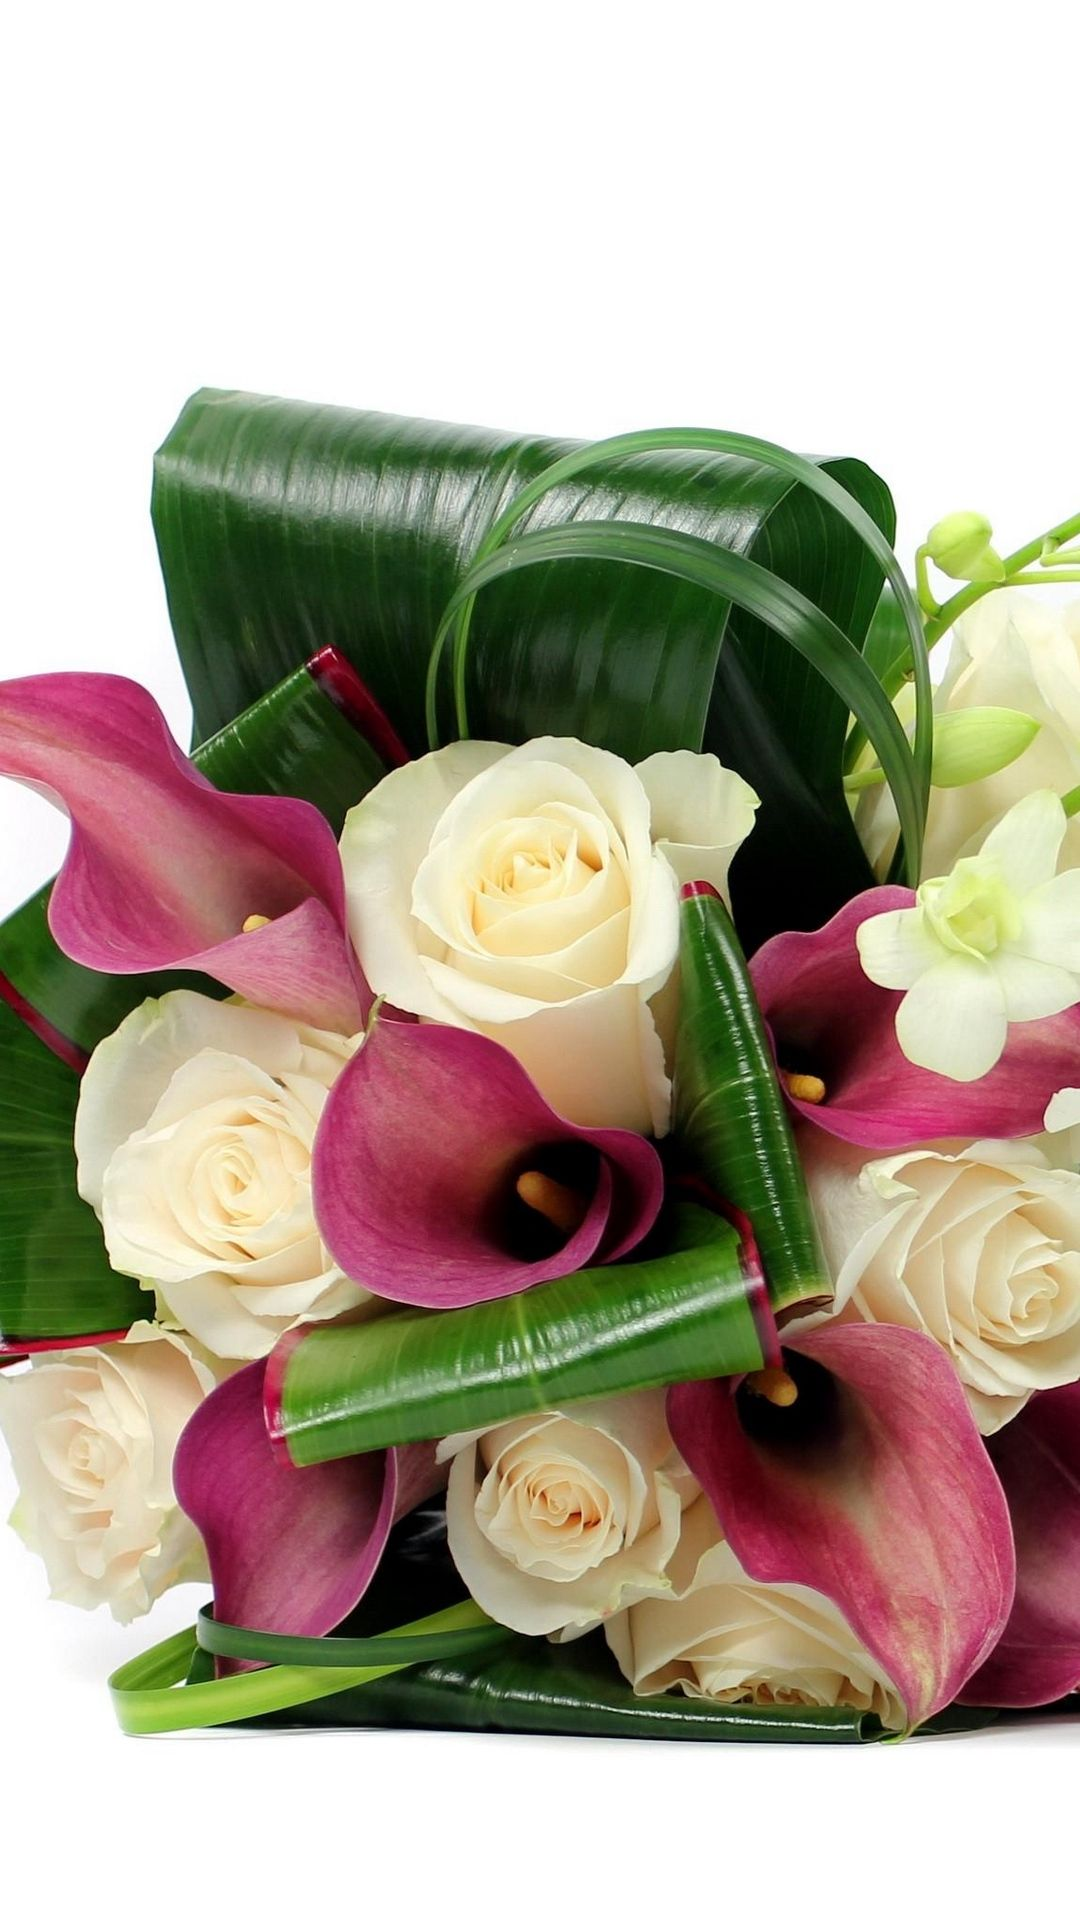 Roses Freesia White Background Bouquet Of Calla Leaves